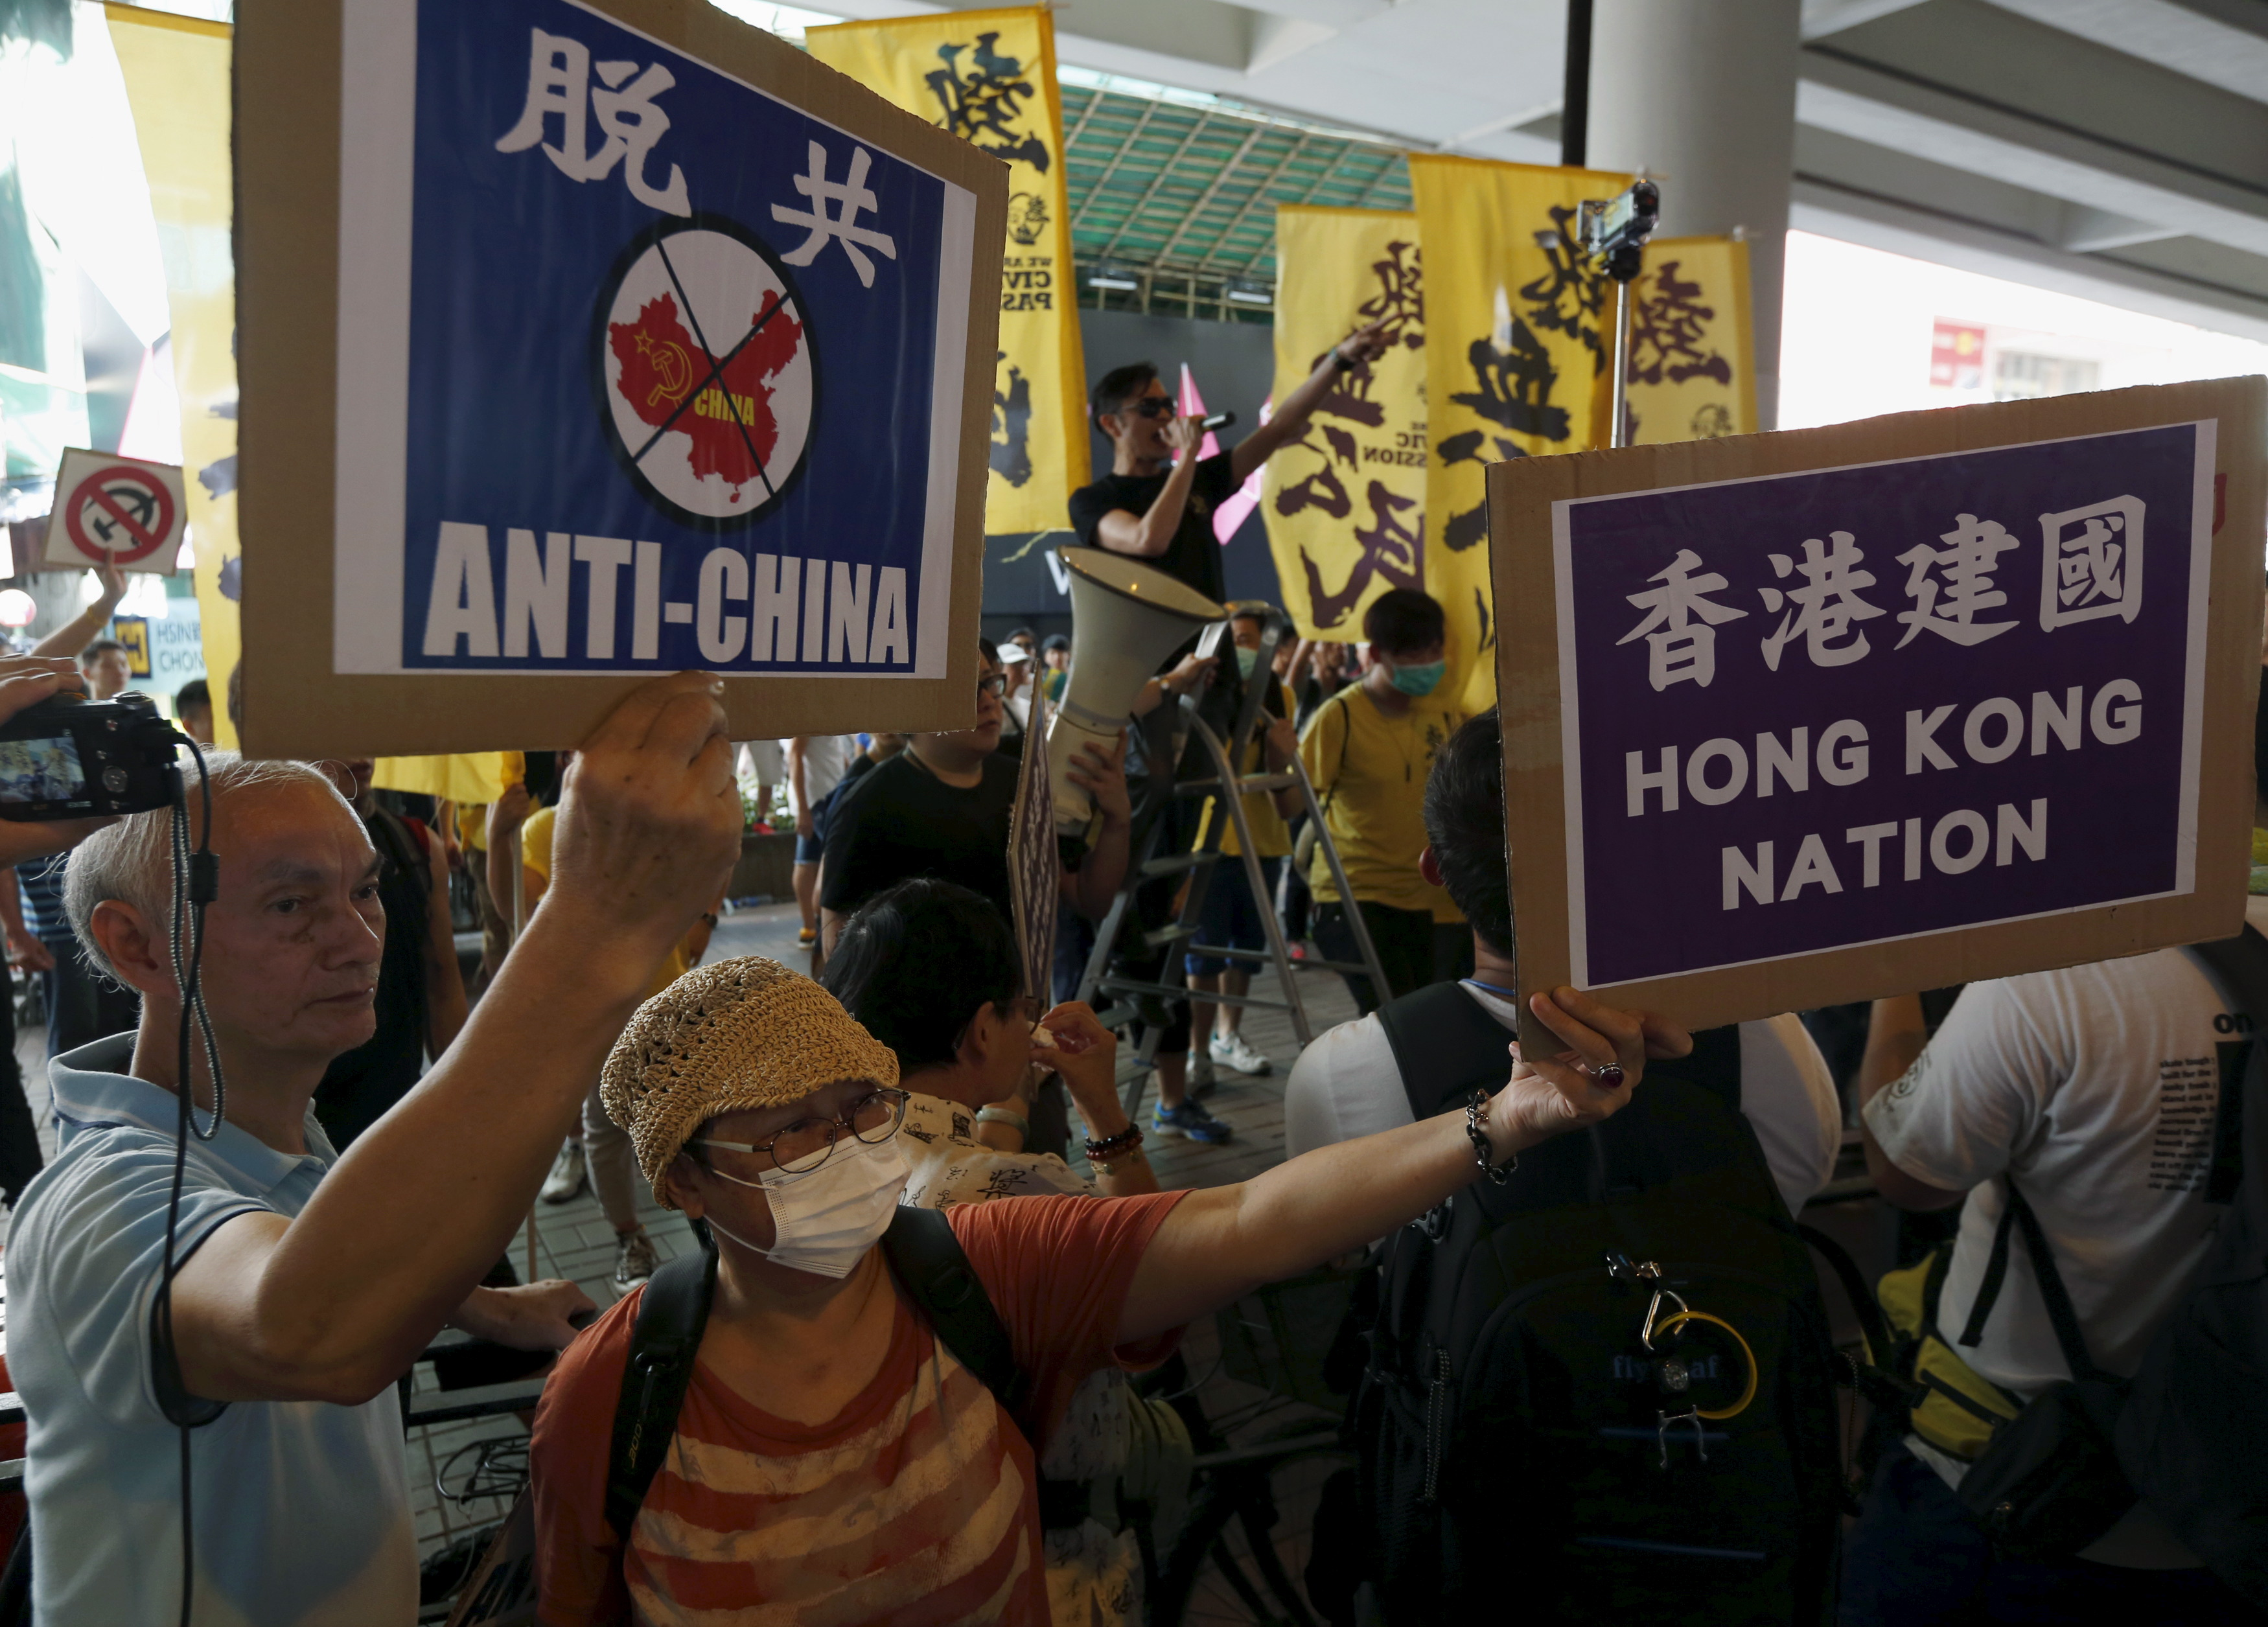 Protesters hold up placards as others shout against pro-China supporters (not in picture) during a demonstration in Hong Kong on July 1, 2015